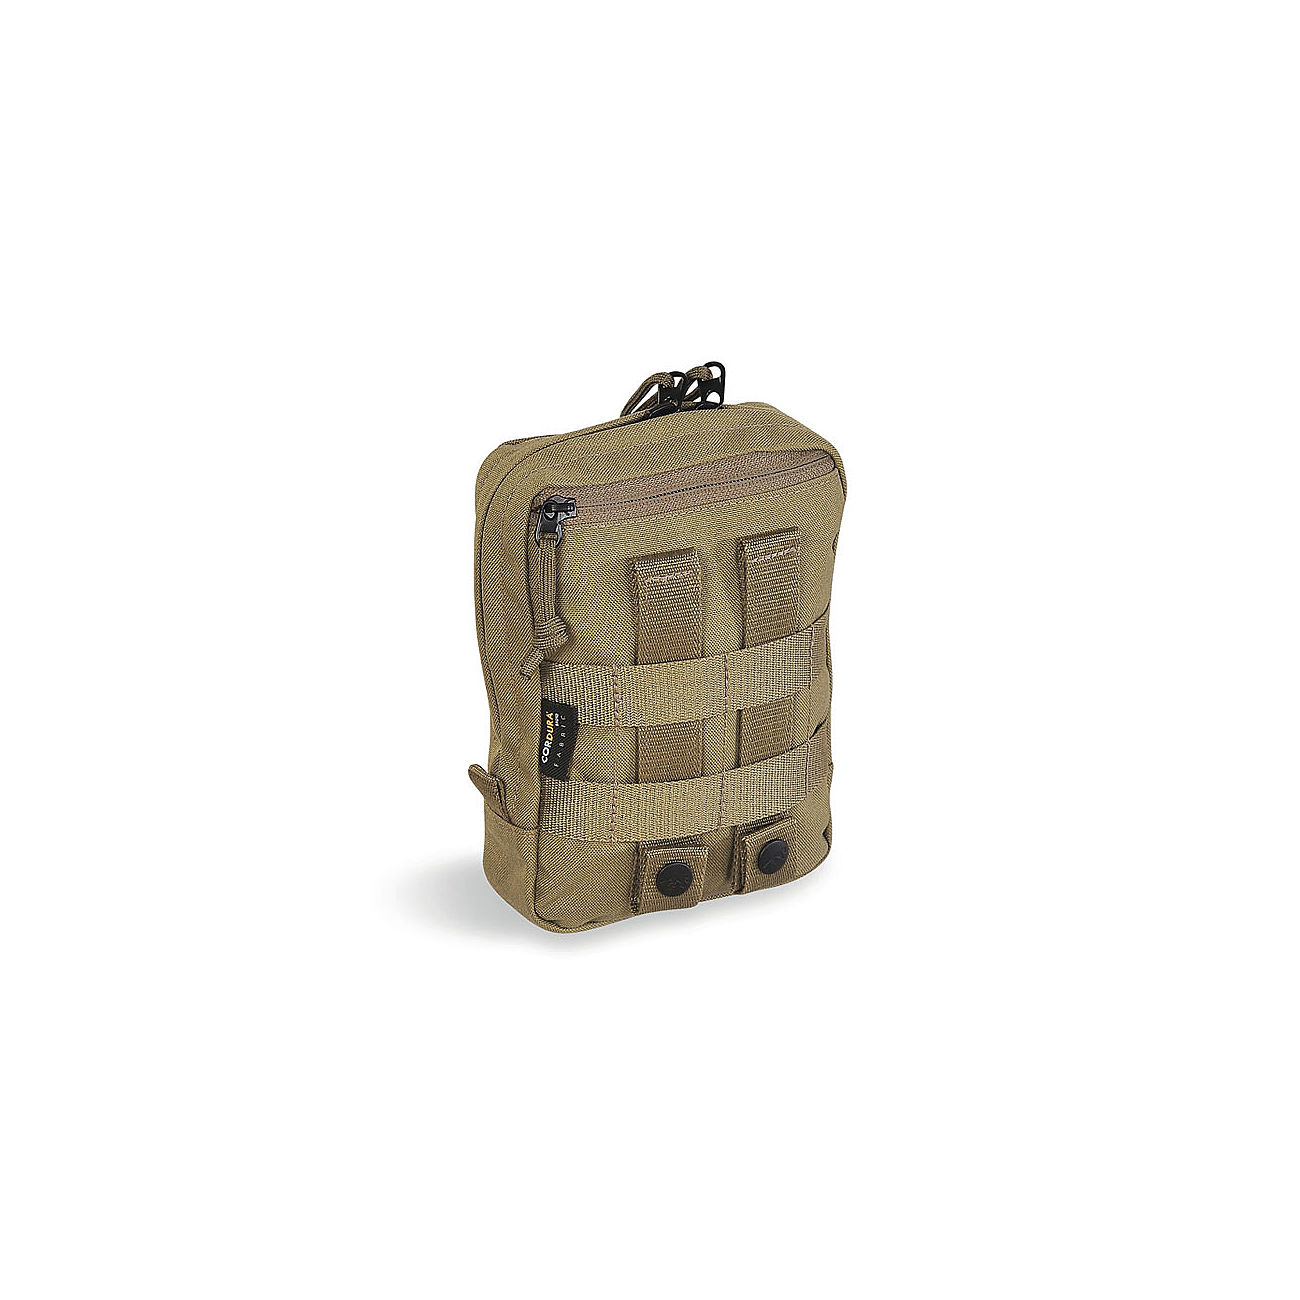 TT Modular Patch Holder khaki 1